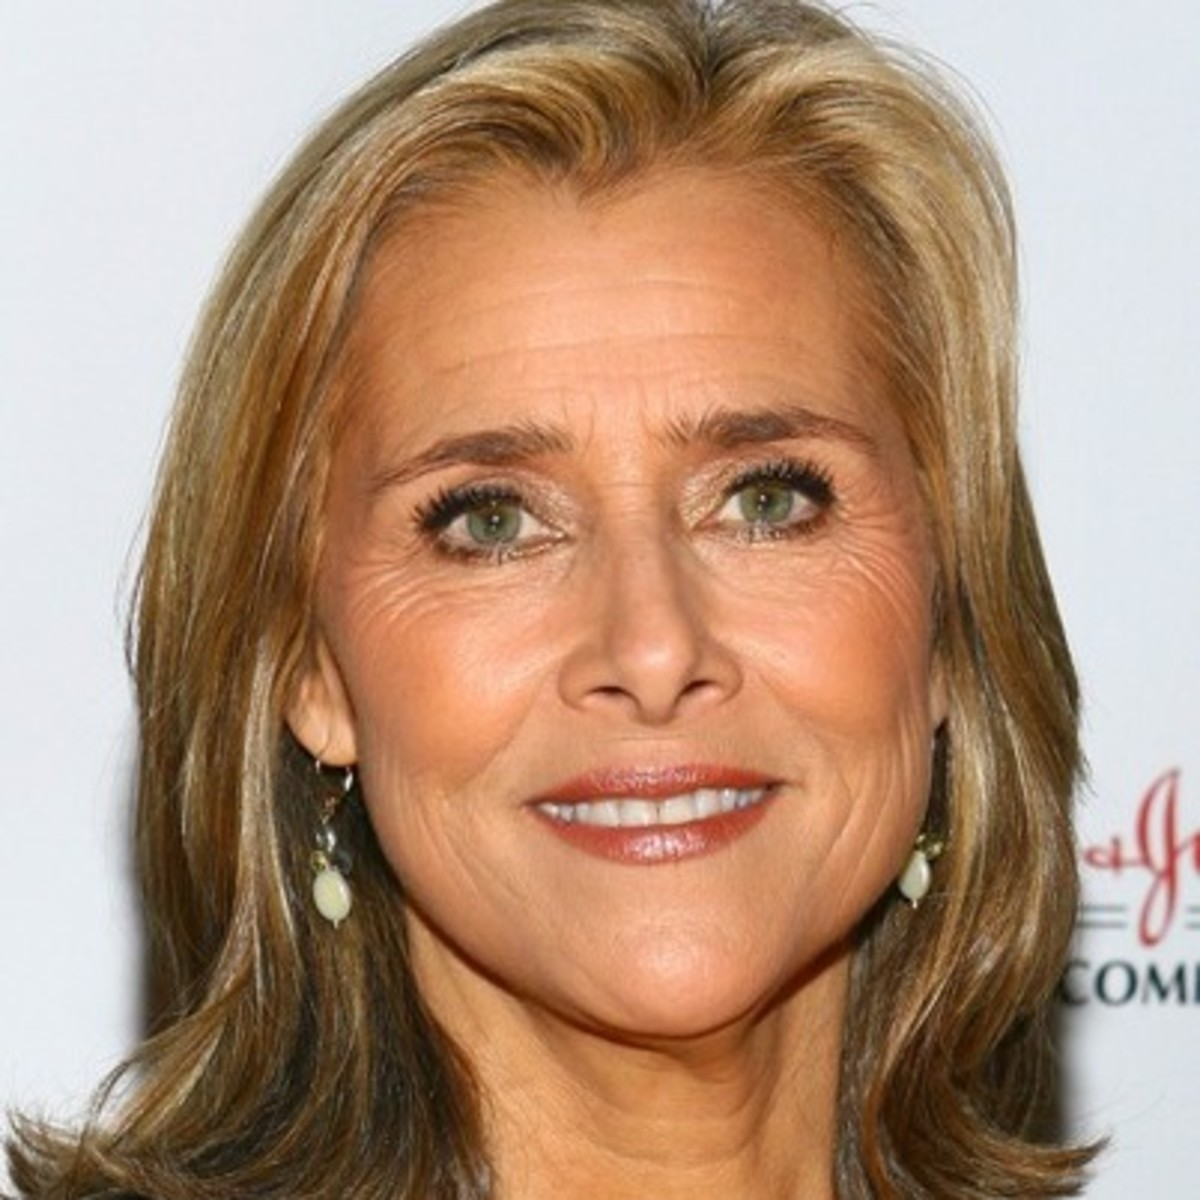 Meredith Vieira  Talk Show Host News Anchor  Biography